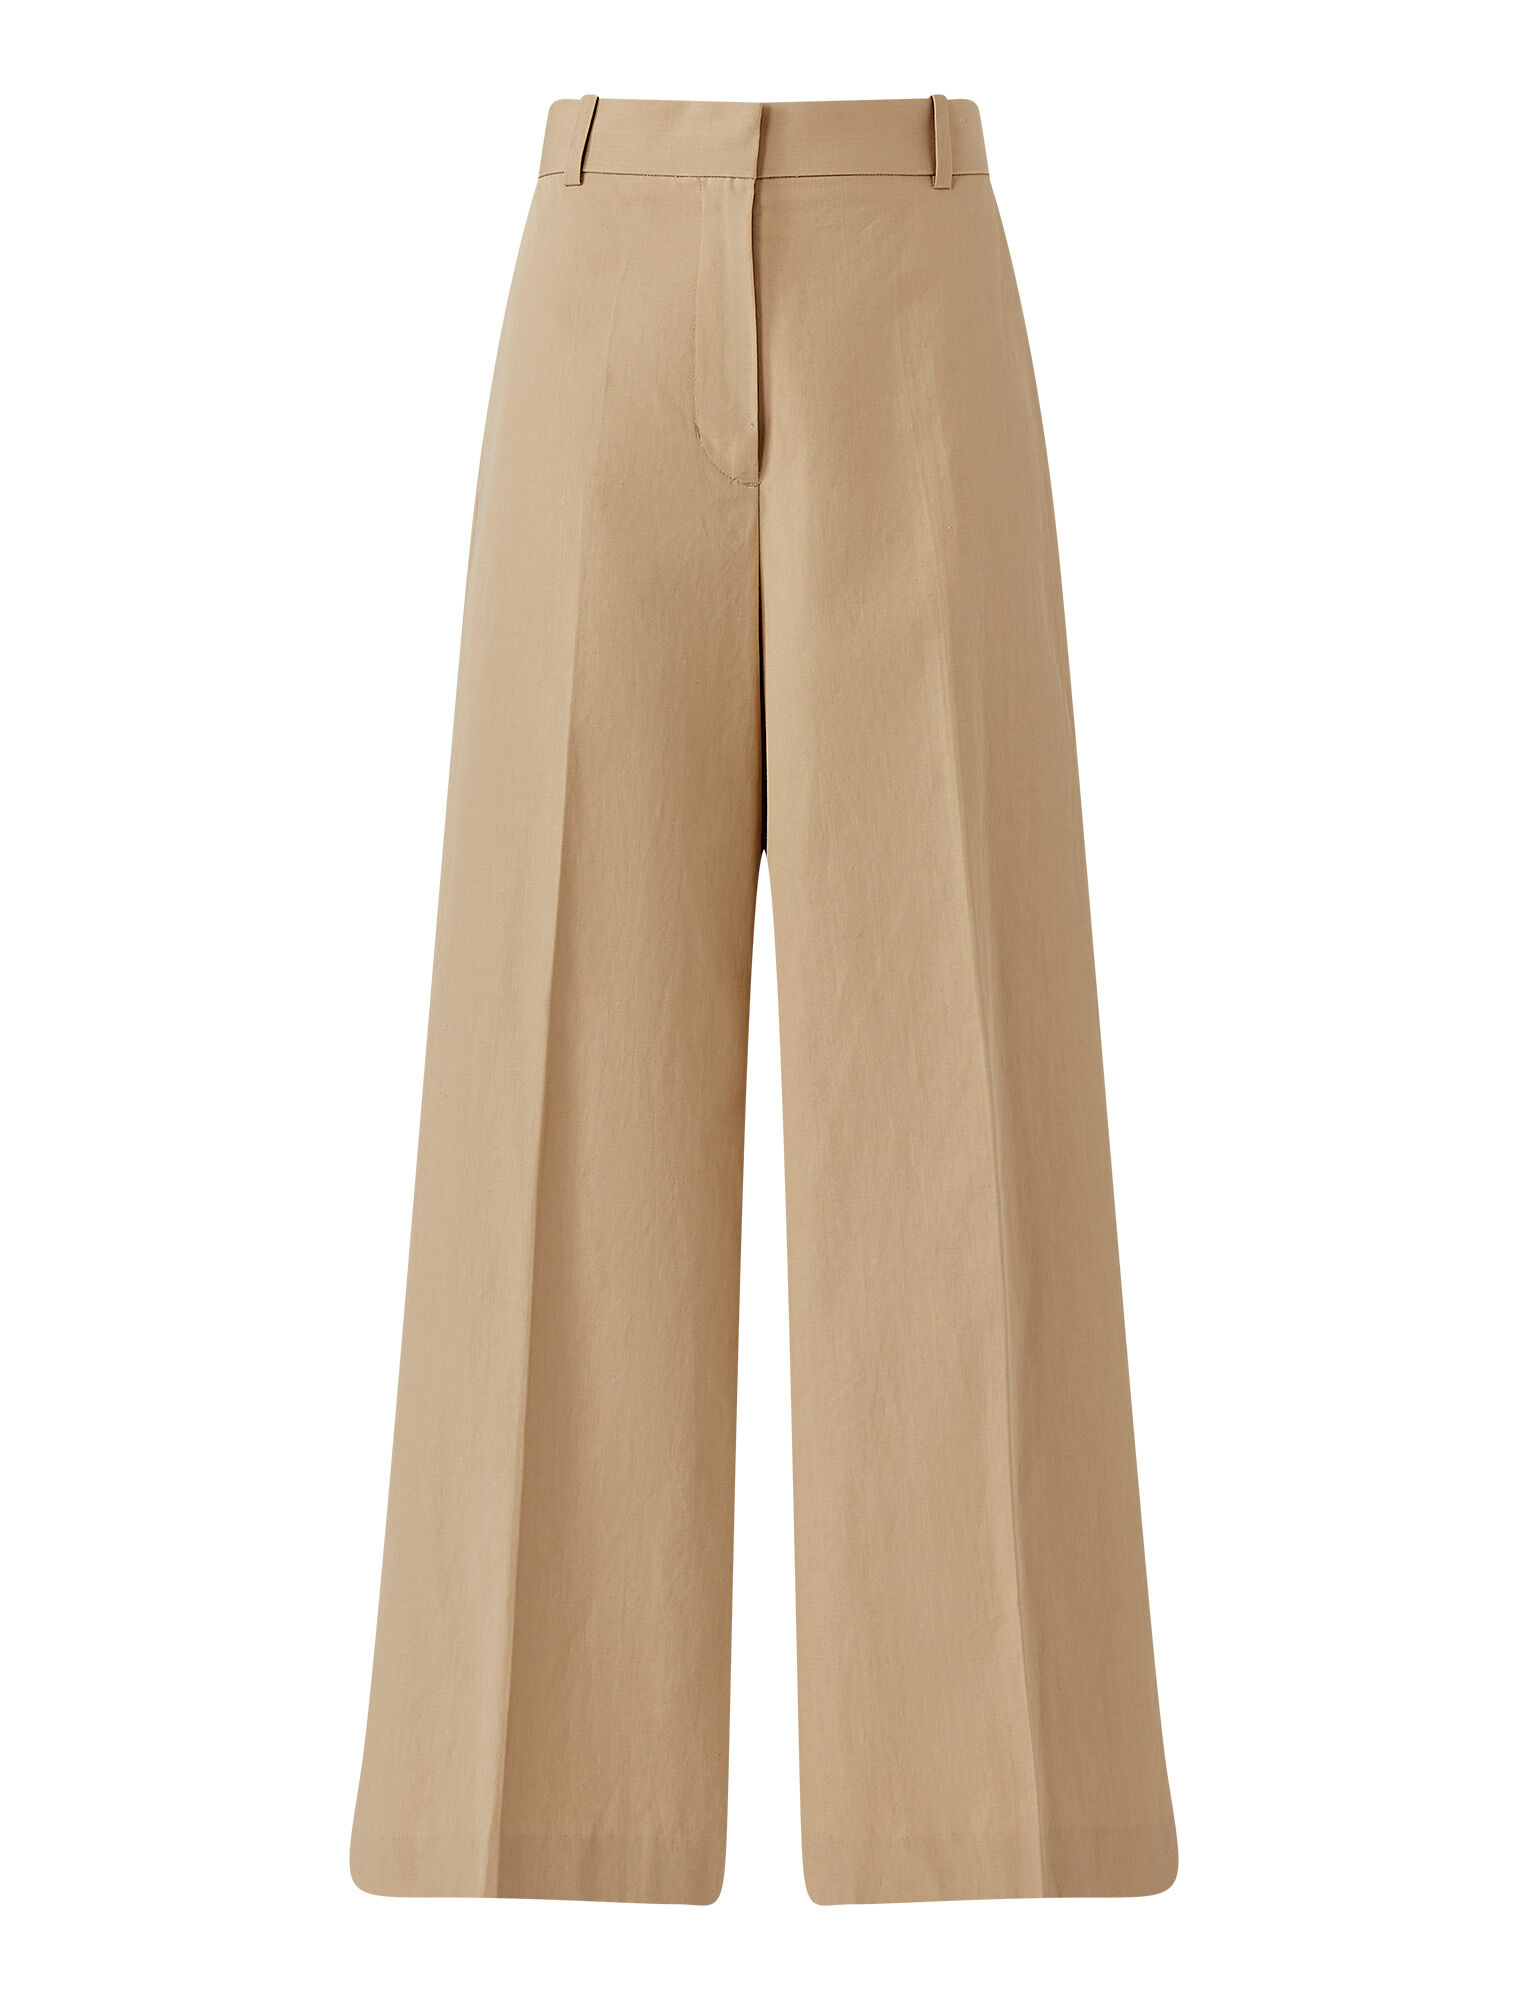 Joseph, Cotton Linen Talan Trousers, in LINEN